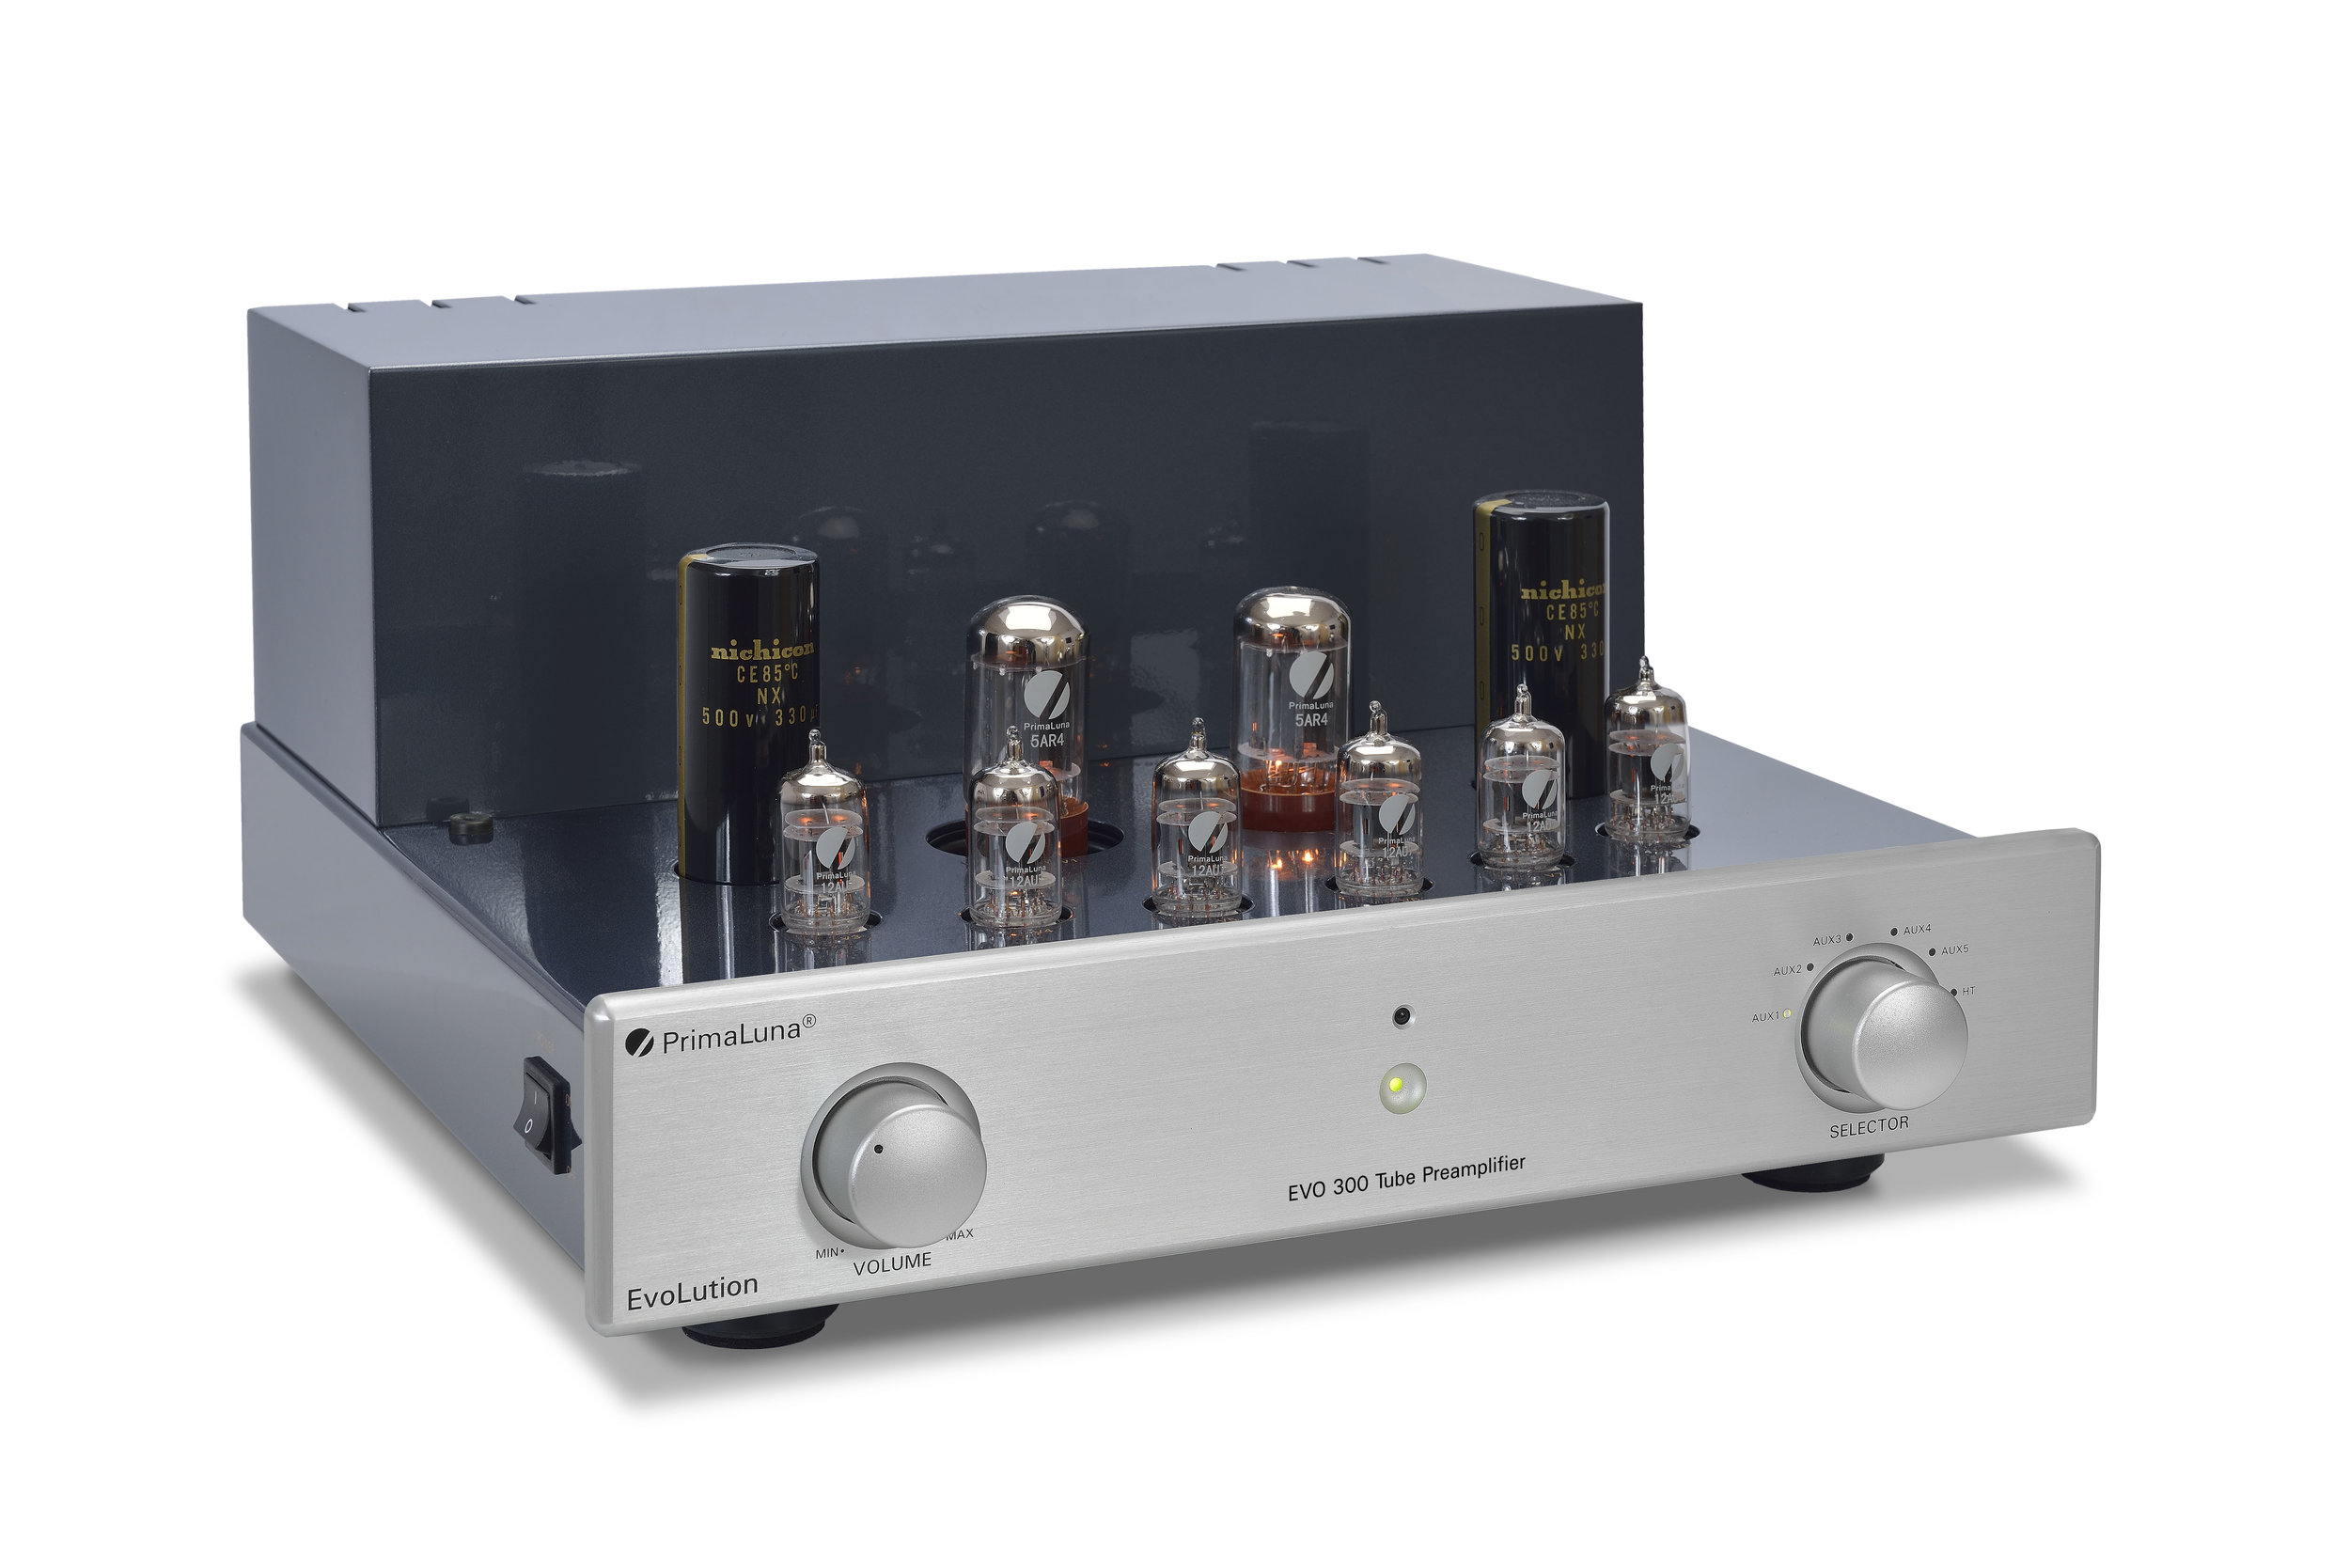 015b - PrimaLuna Evo 300 Tube Preamplifier - silver - slanted - without cage - white background.jpg